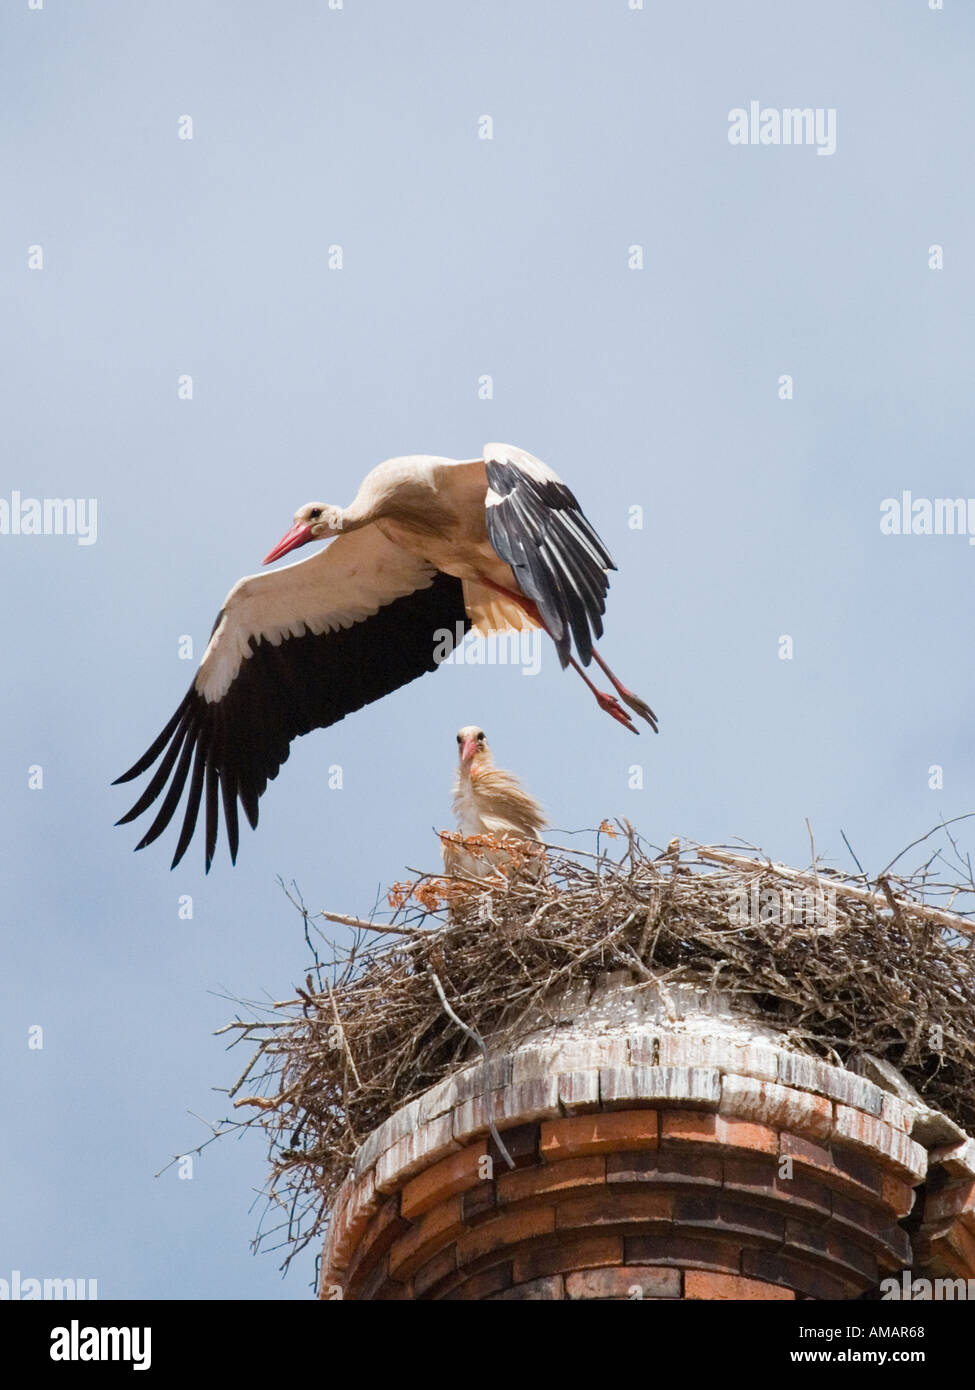 WHITE STORK Ciconia ciconia flying from nest Algarve Portugal Europe Stock Photo